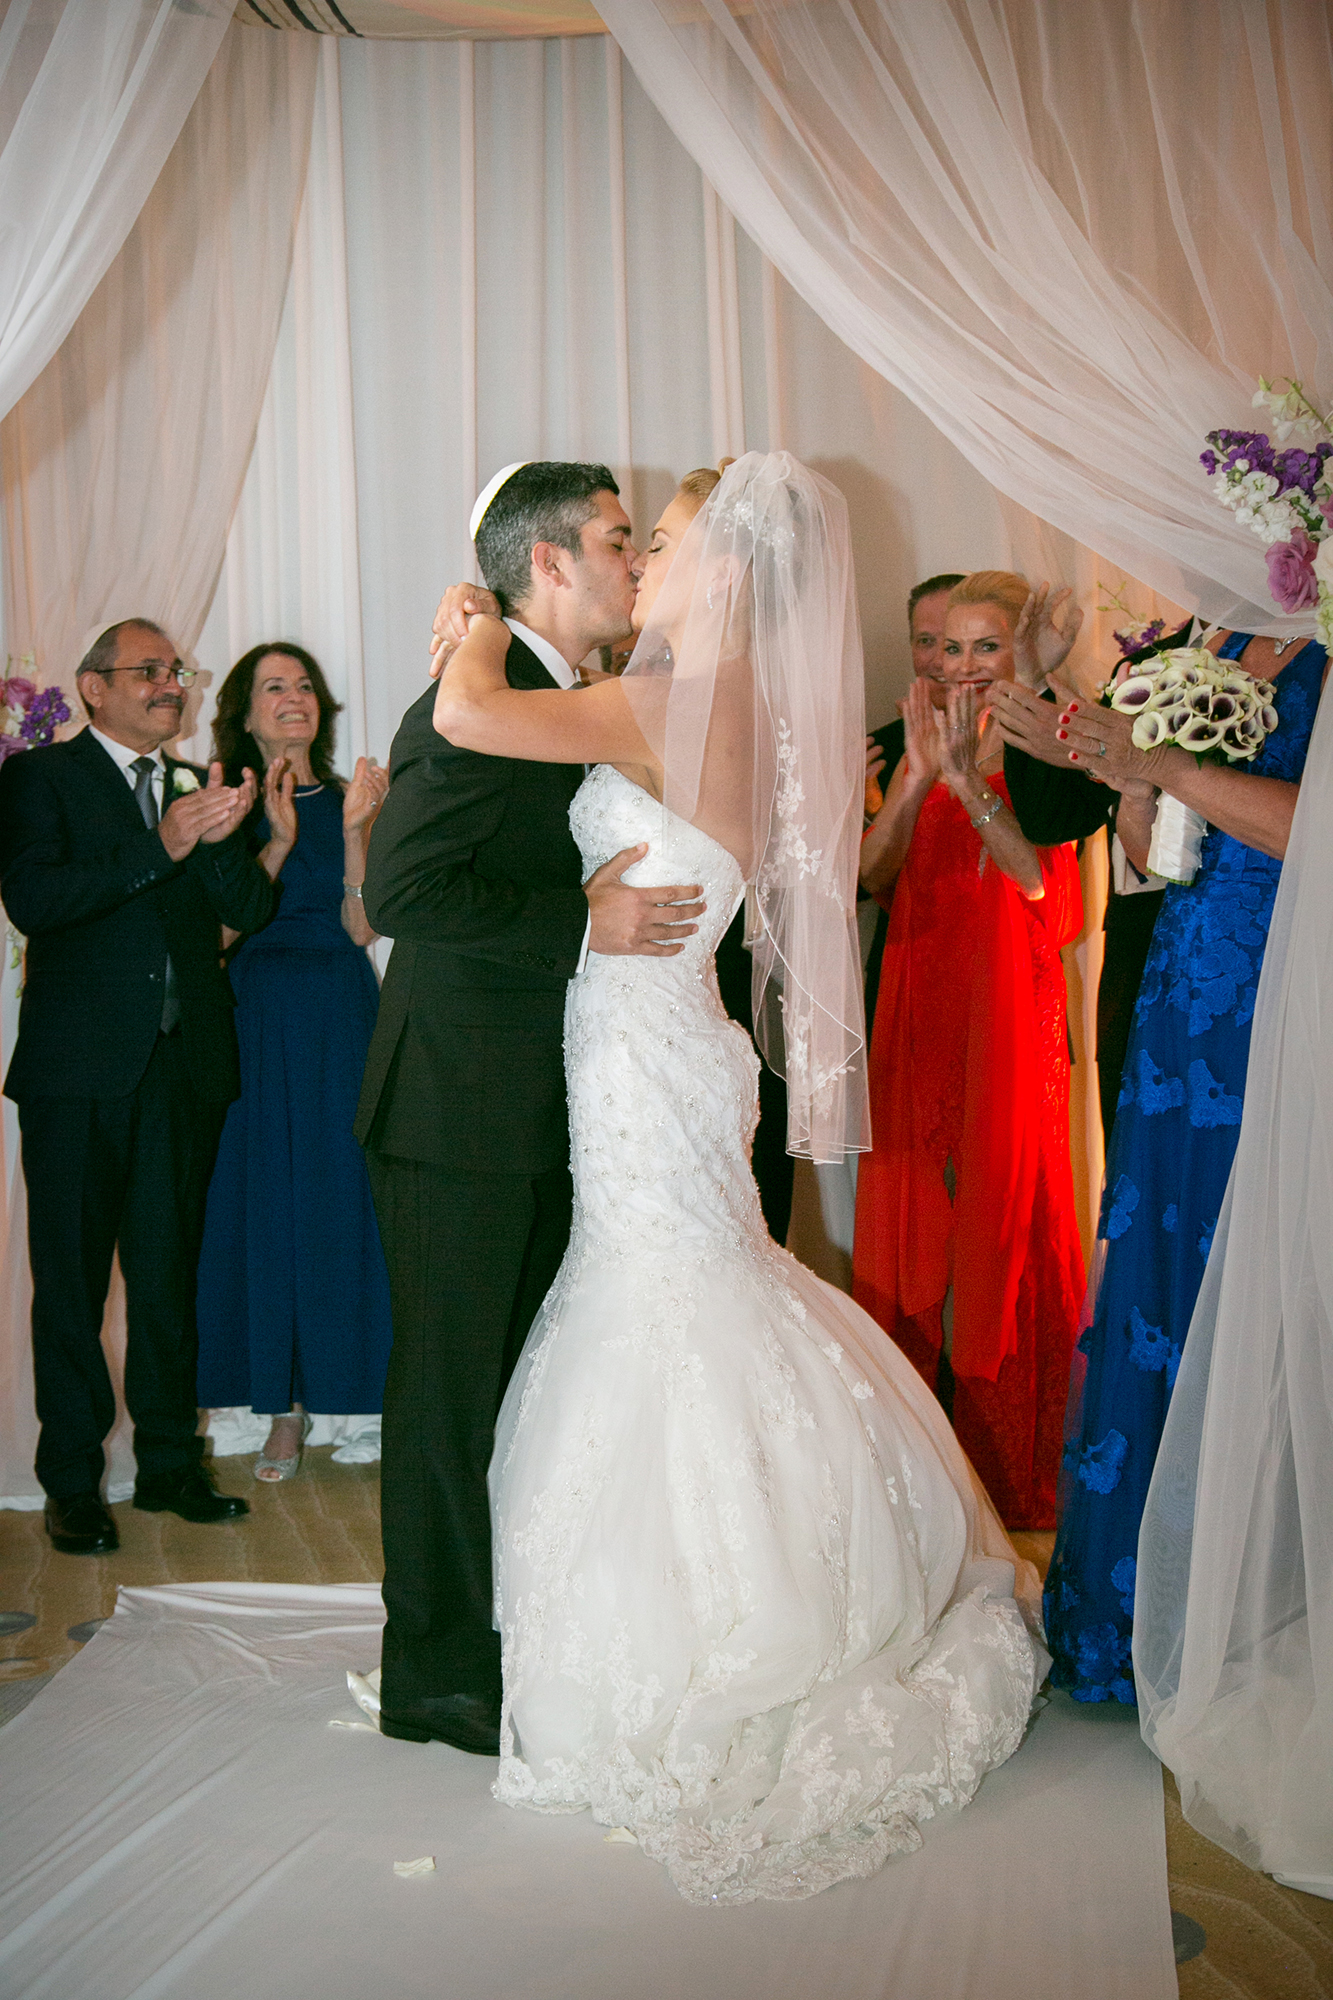 ritz-carlton-florida-wedding-jeffkolodny-photography-06